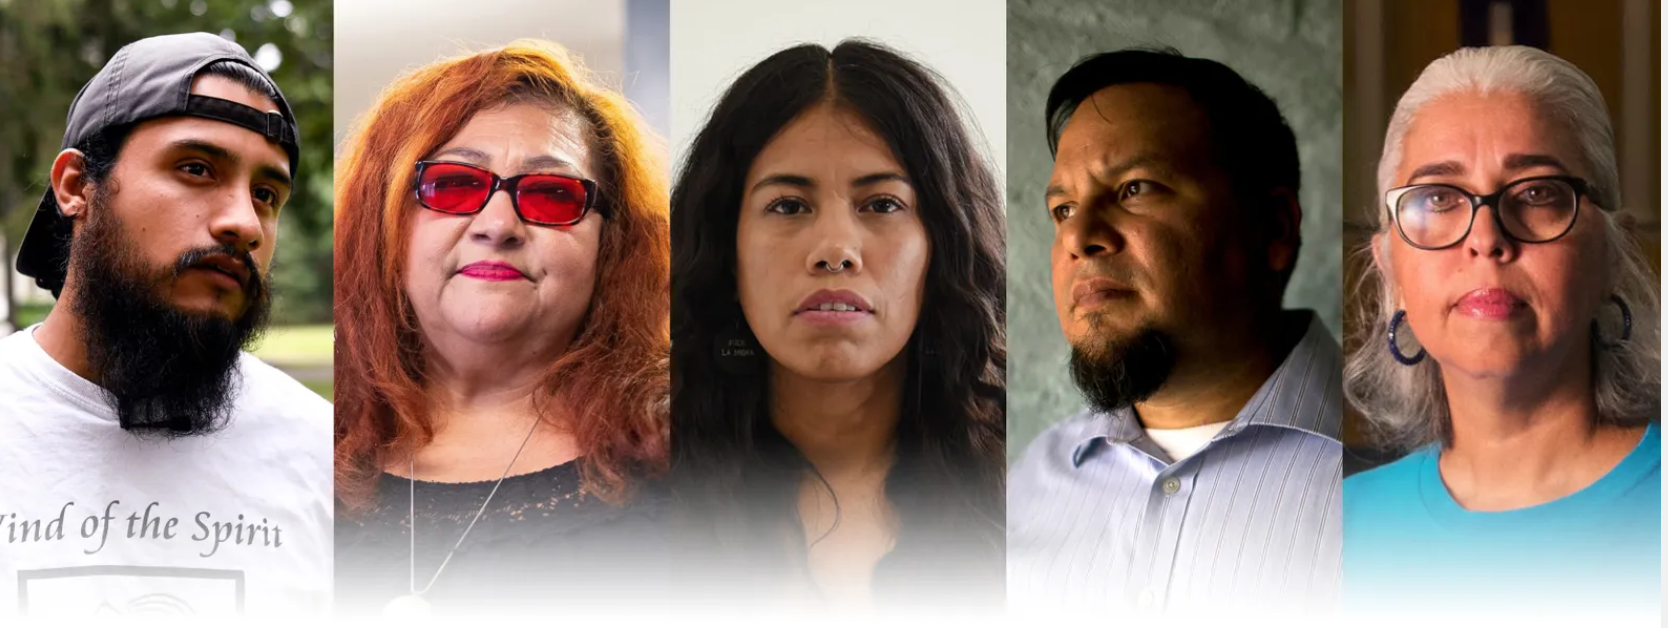 After El Paso, Latinos across America voice a new kind of fear